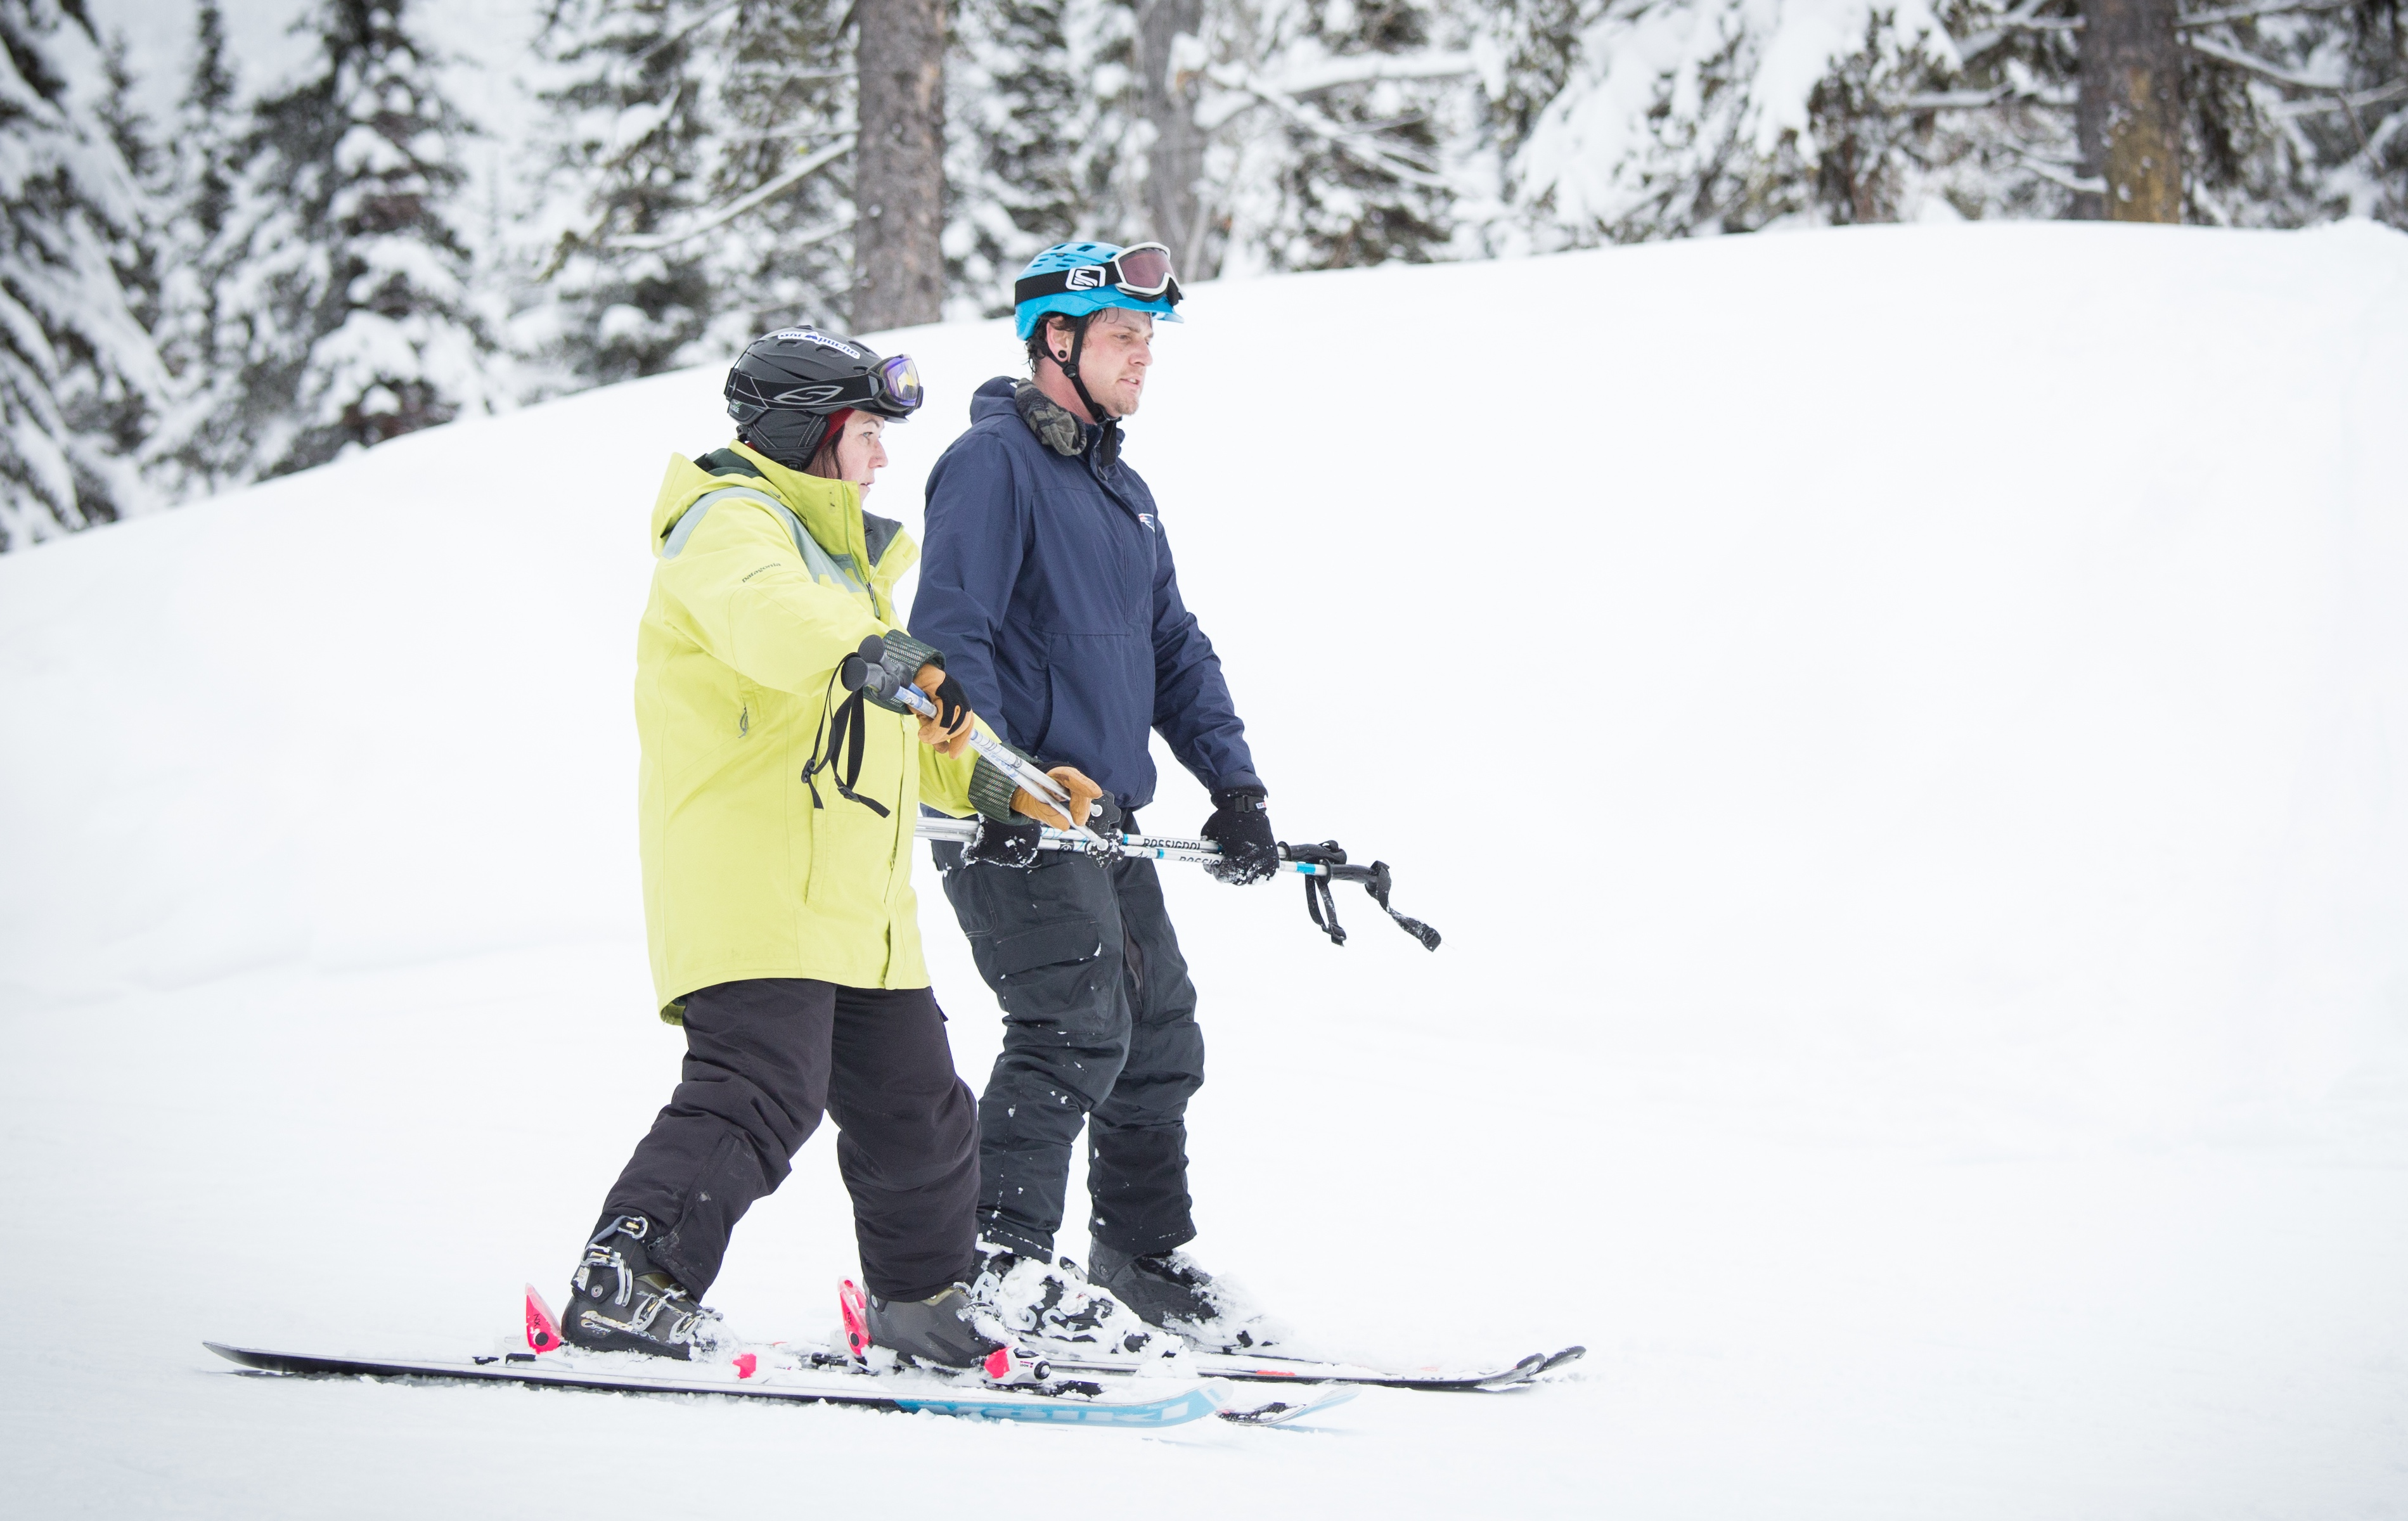 A Dream volunteer skiing with a participant